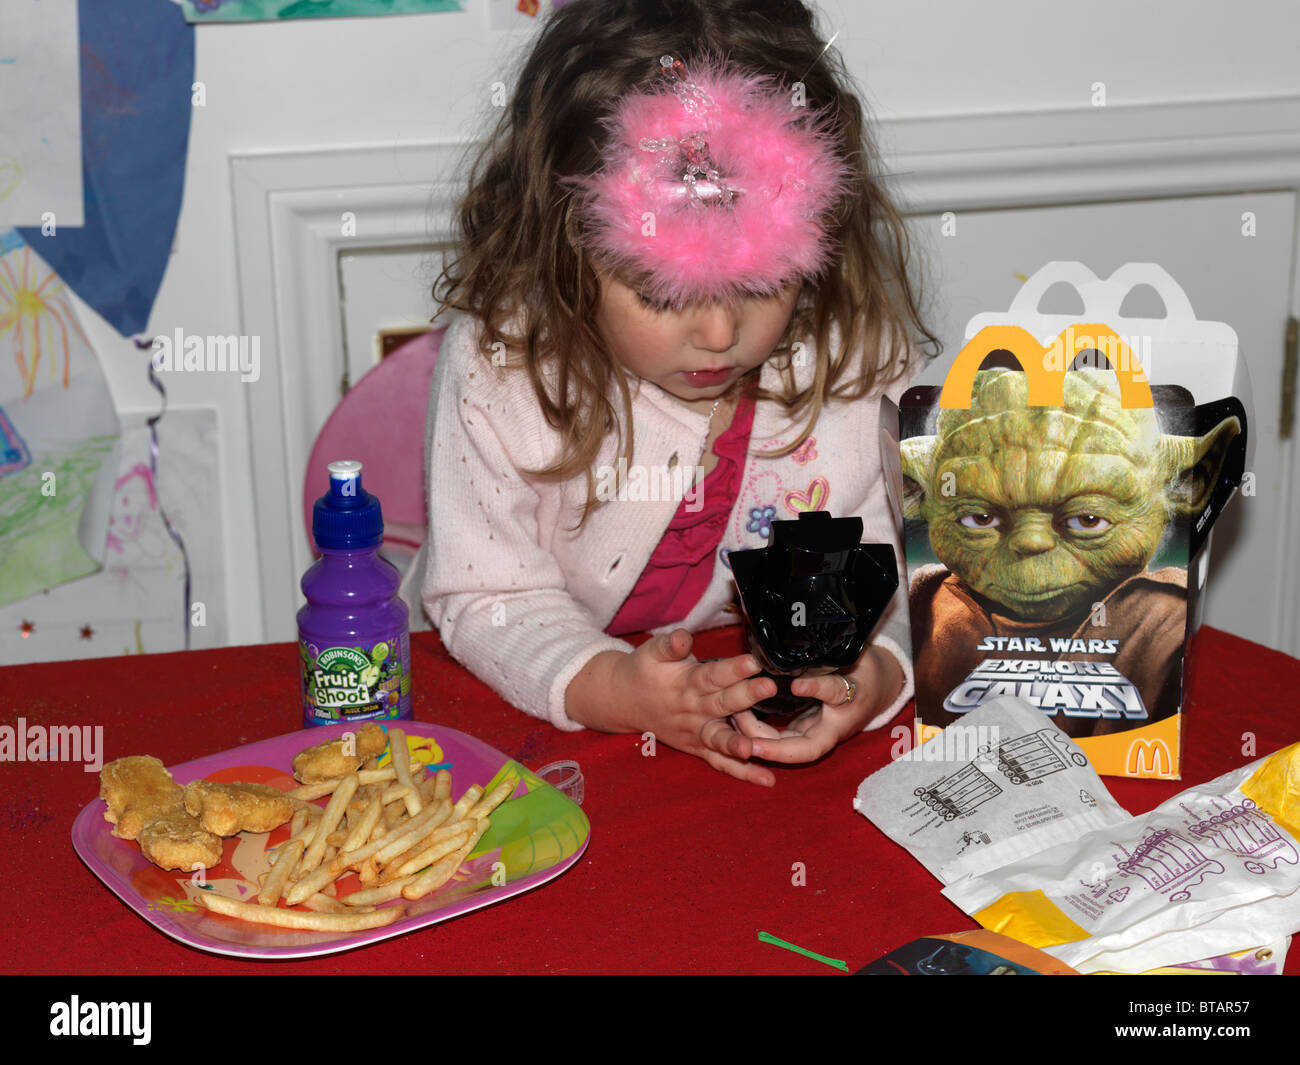 Young Girl Mit A Mcdonalds Happy Meal Spielen Mit A Star Wars